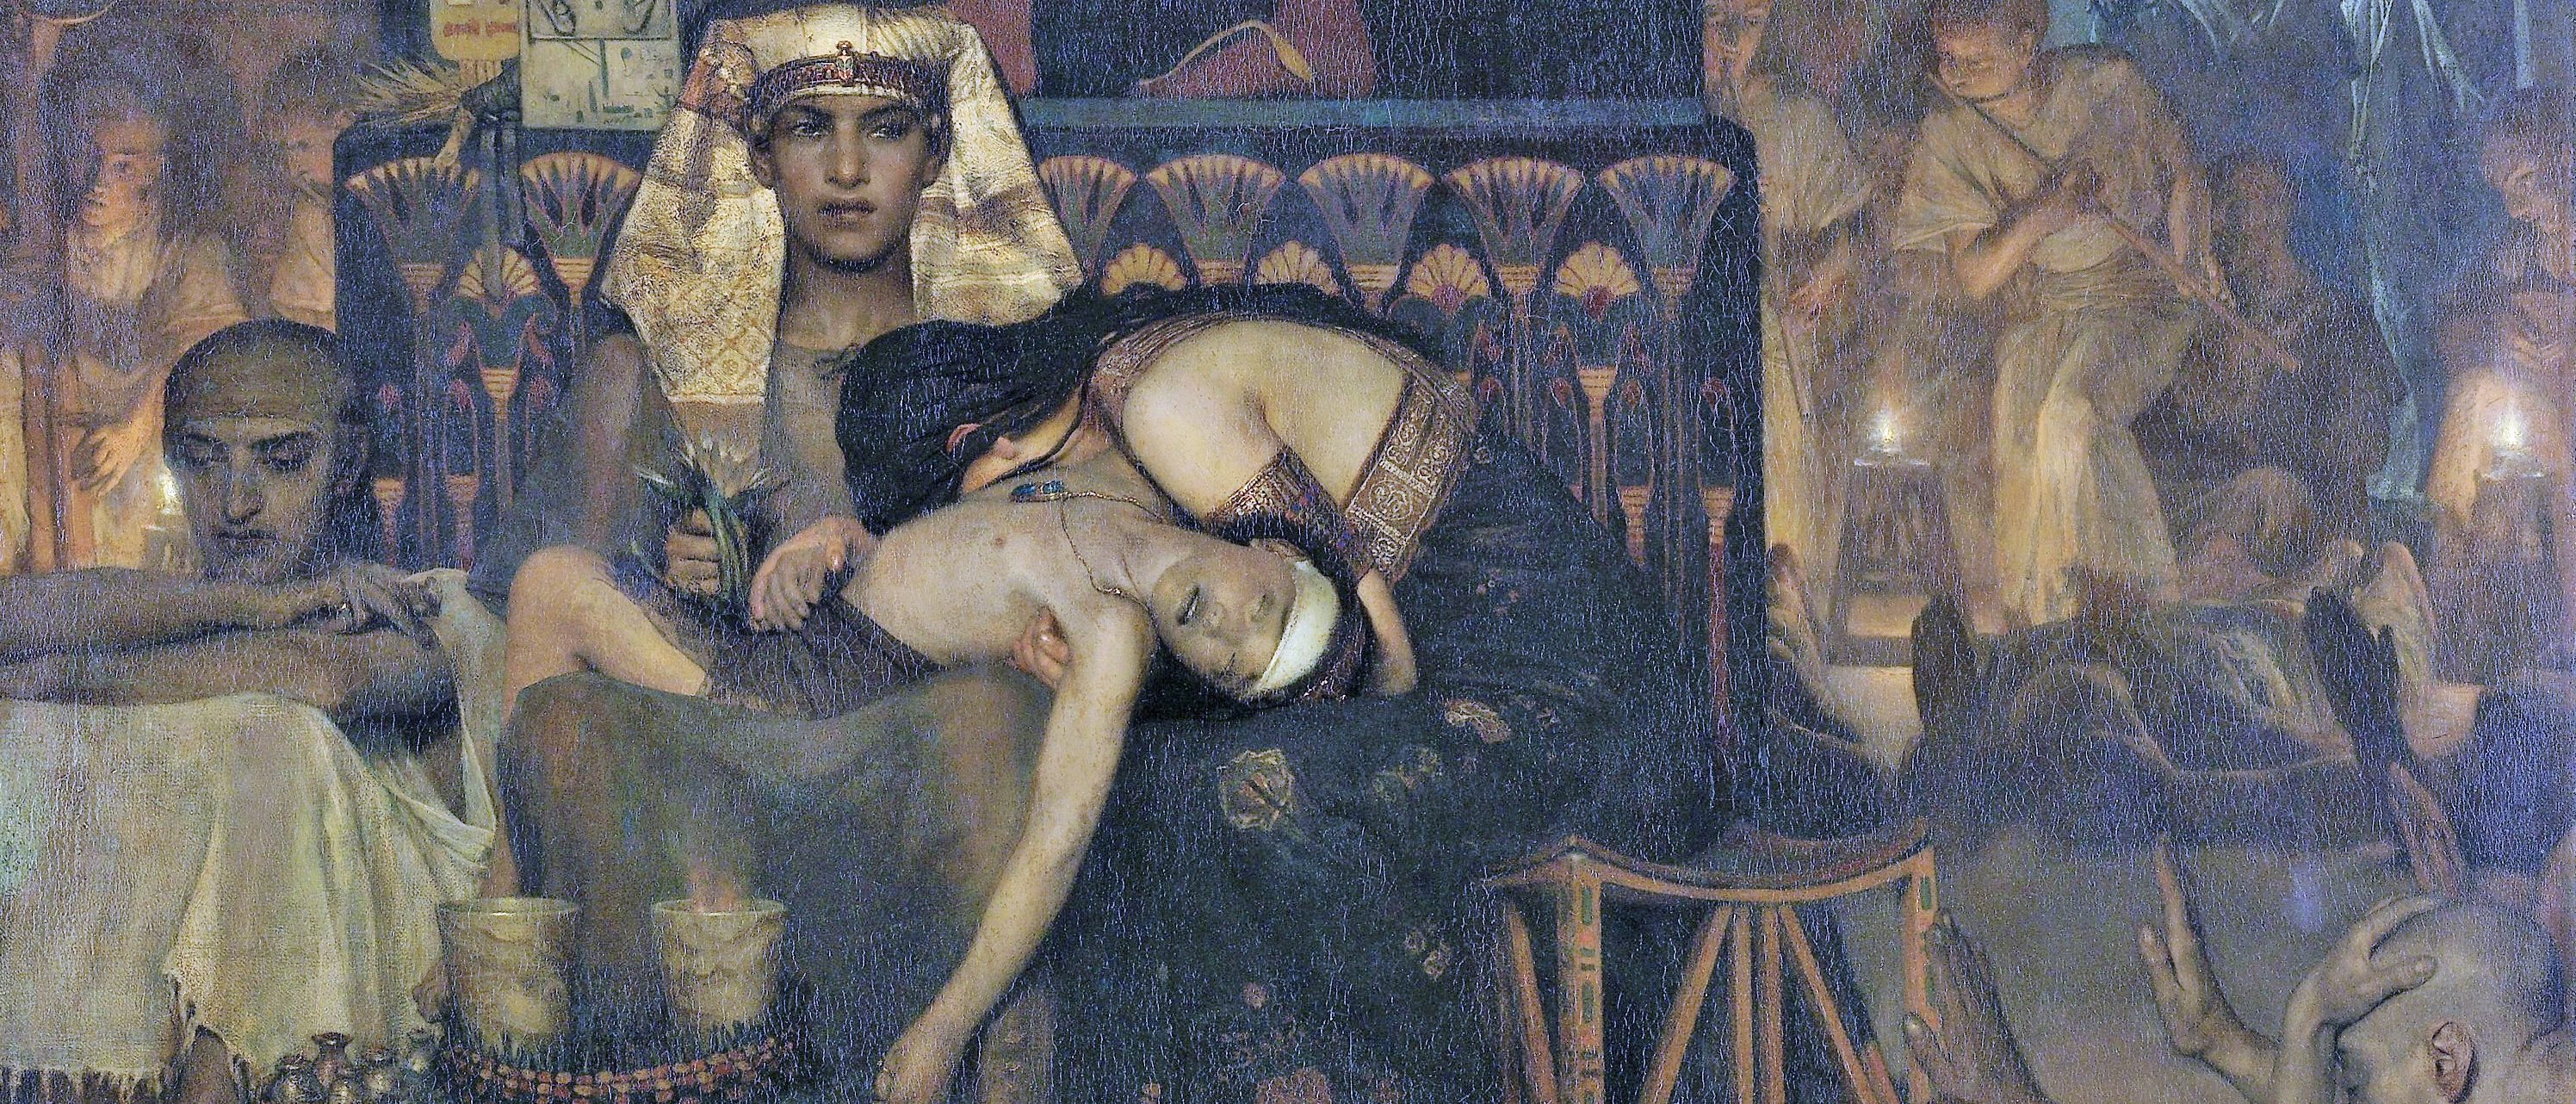 Death of the Pharaoh's Firstborn Son, by Lawrence Alma Tadema, 1872, English painting oil on canvas. Moses and Aaron. Everett - Art/Shutterstock